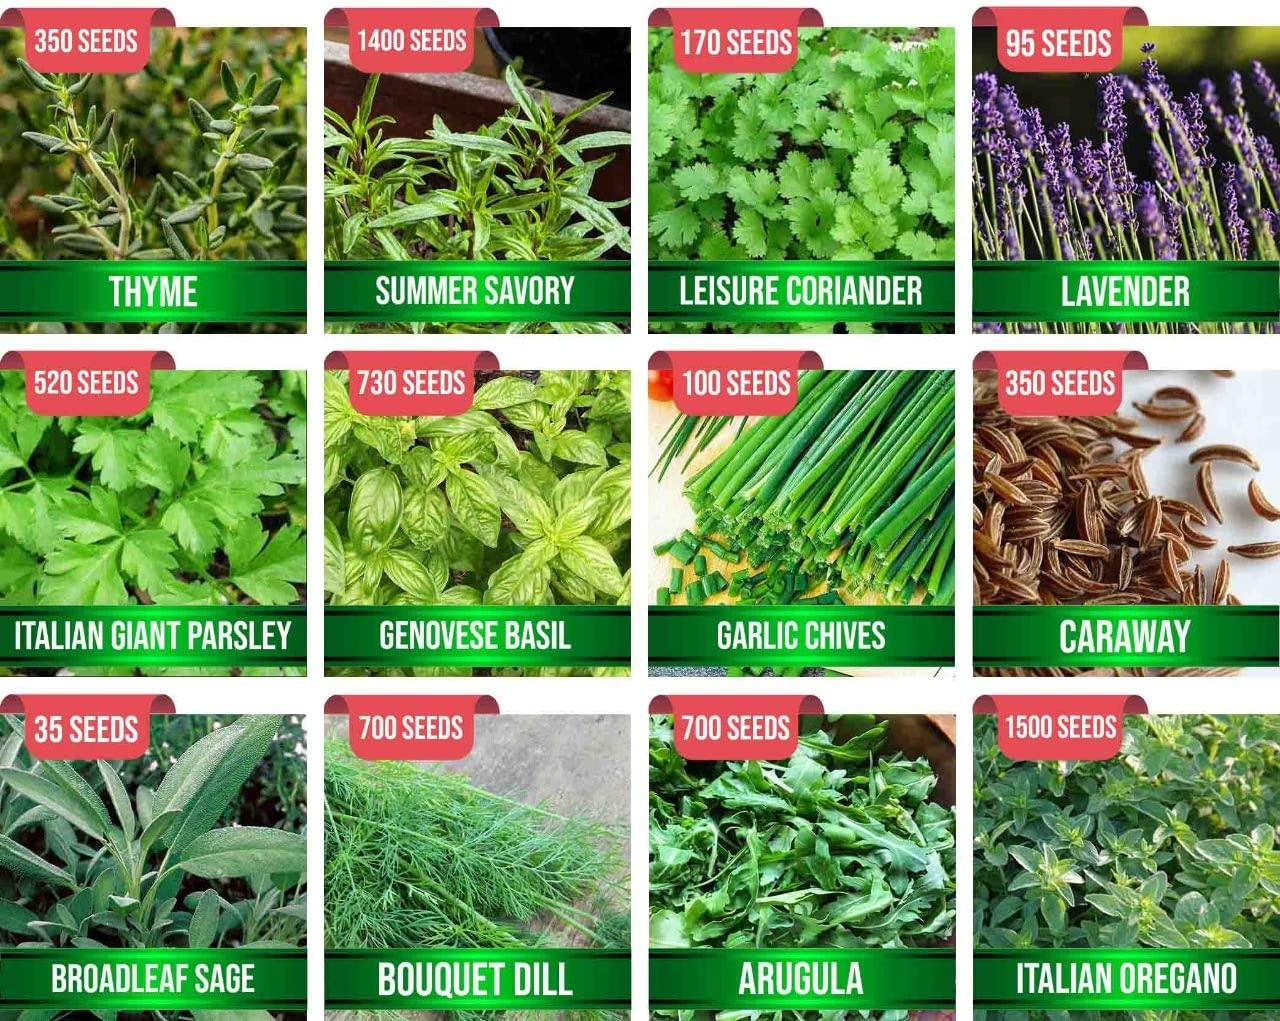 Assorted 12 Popular Herb Seeds USA Origins, 5500+ Seeds Survival Garden Kit, Easy to Grow Herb Seeds for Planting, 100% Non-GMO Heirloom Collection for Indoor Outdoor Garden Culinary Medicinal